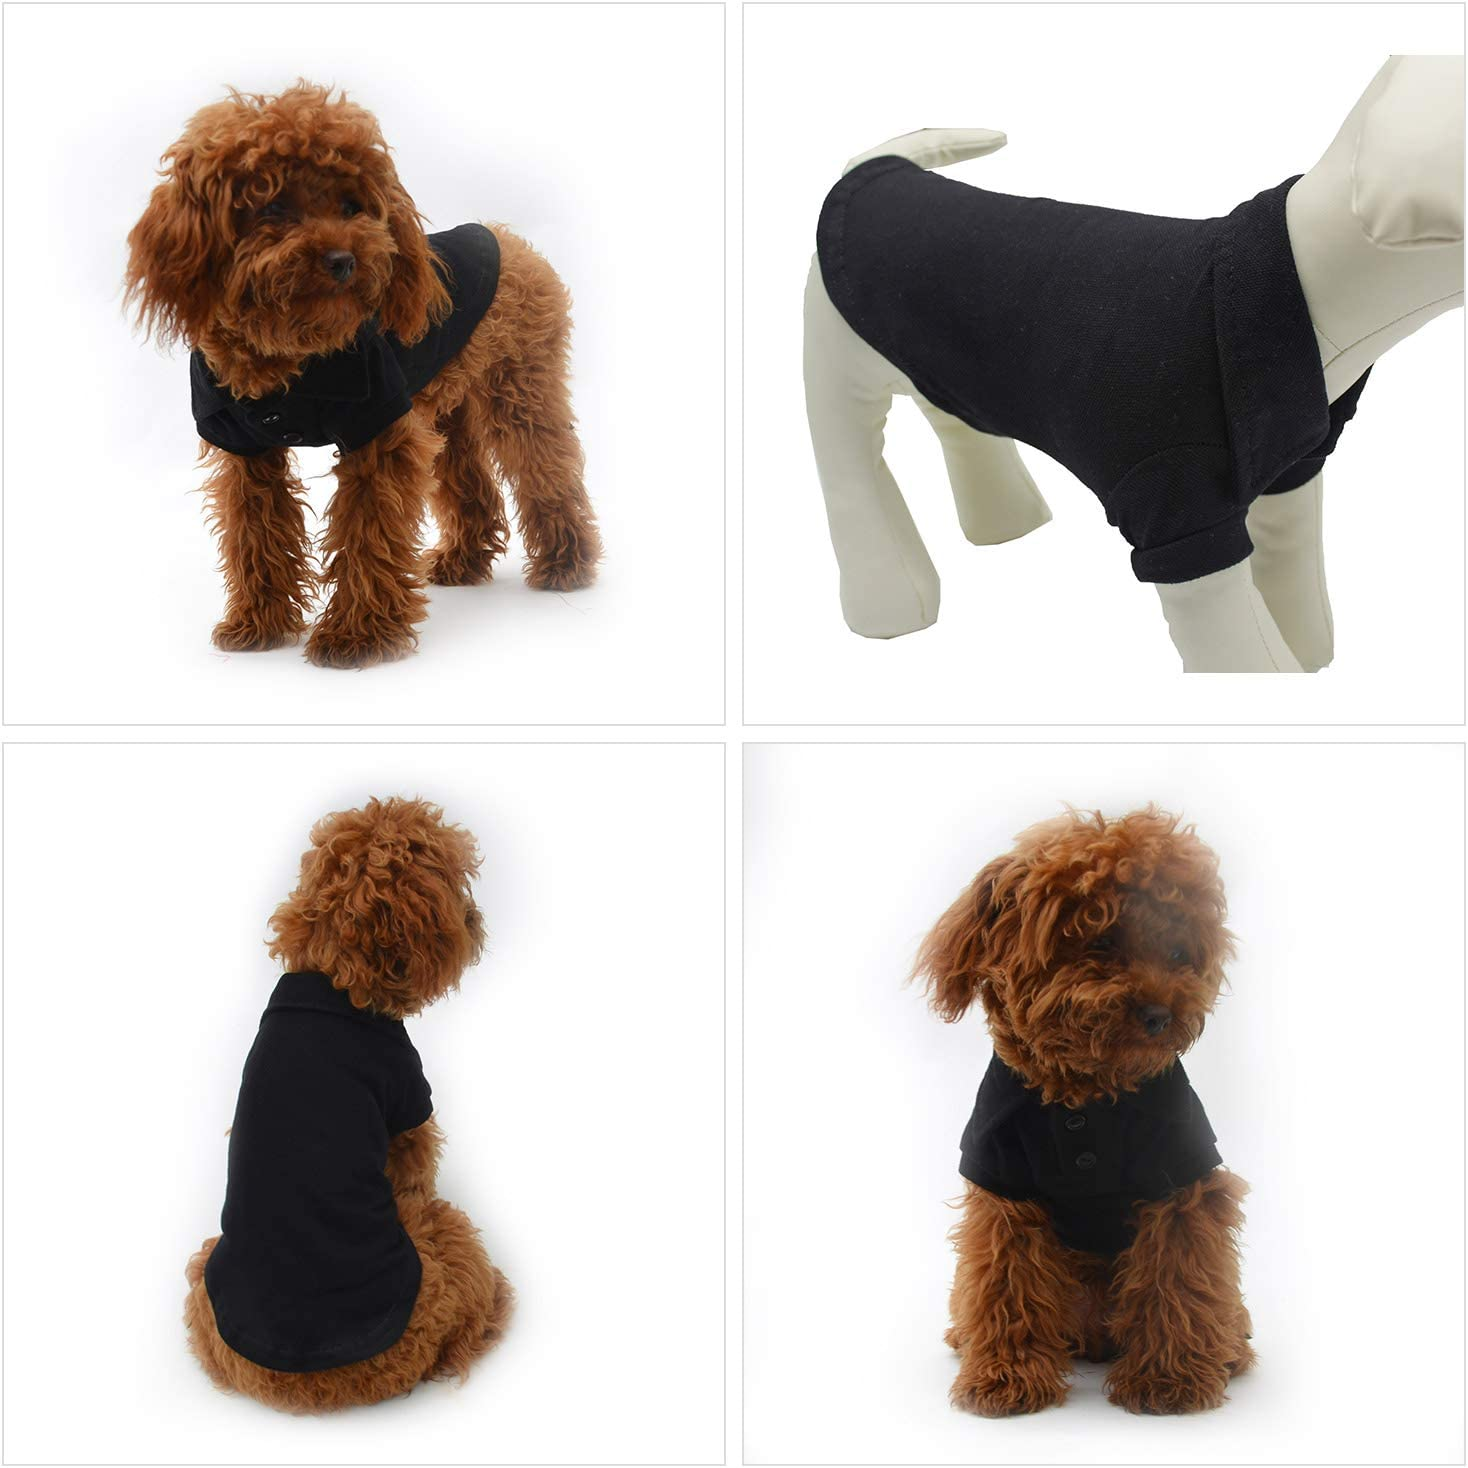 lovelonglong Basic Dog Polo Shirts Premium Cotton Polo T-Shirts for Large Medium Small Dogs with a Two-button Collar Blank Color Black XS